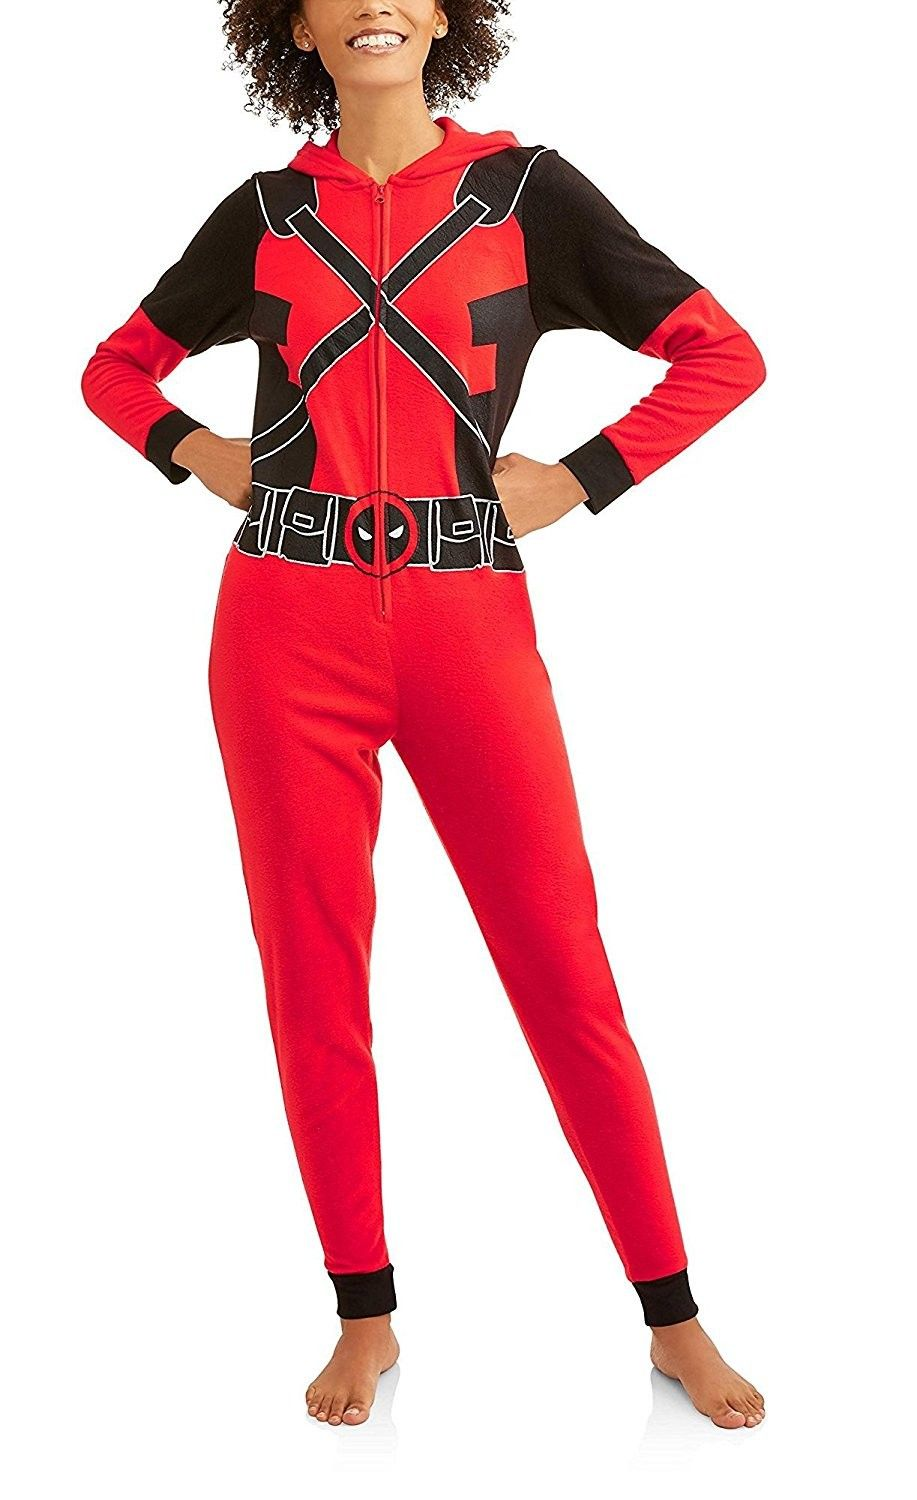 42698726d Marvel Women s Cozy Fleece Union Suit Hooded Pajamas - CW189HARAEO ...